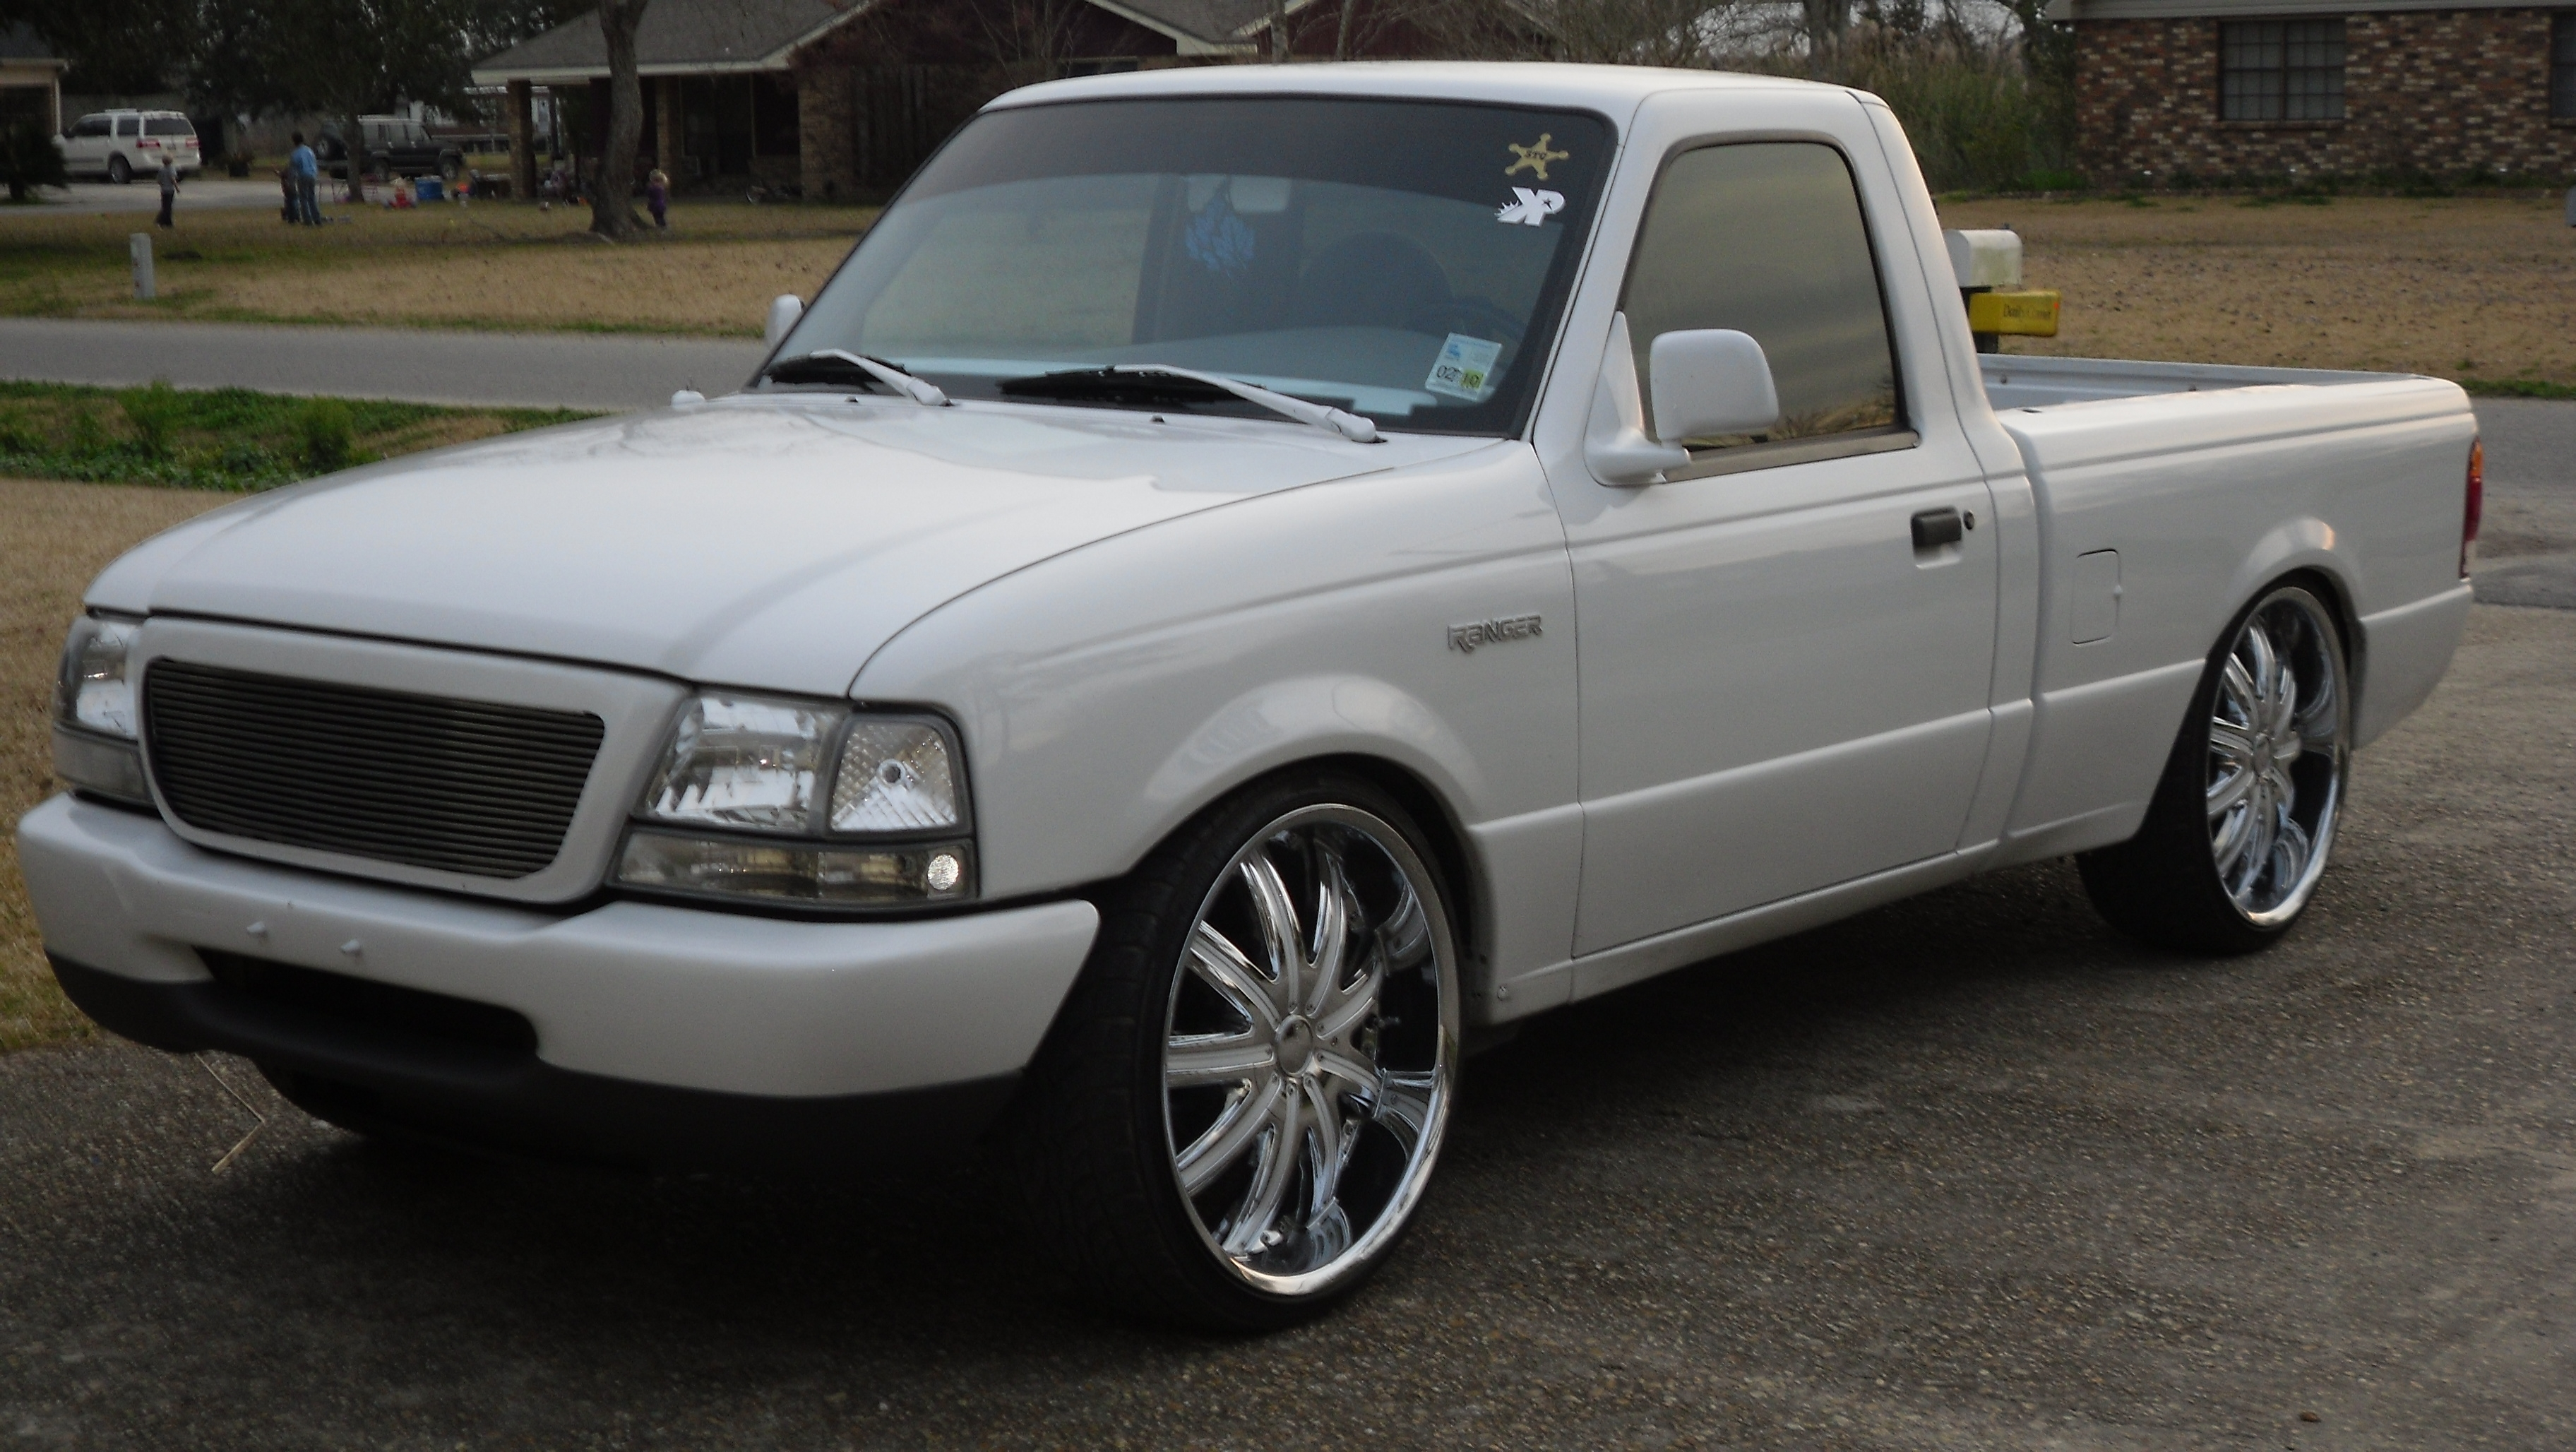 gheensboy's 1999 Ford Ranger Regular Cab